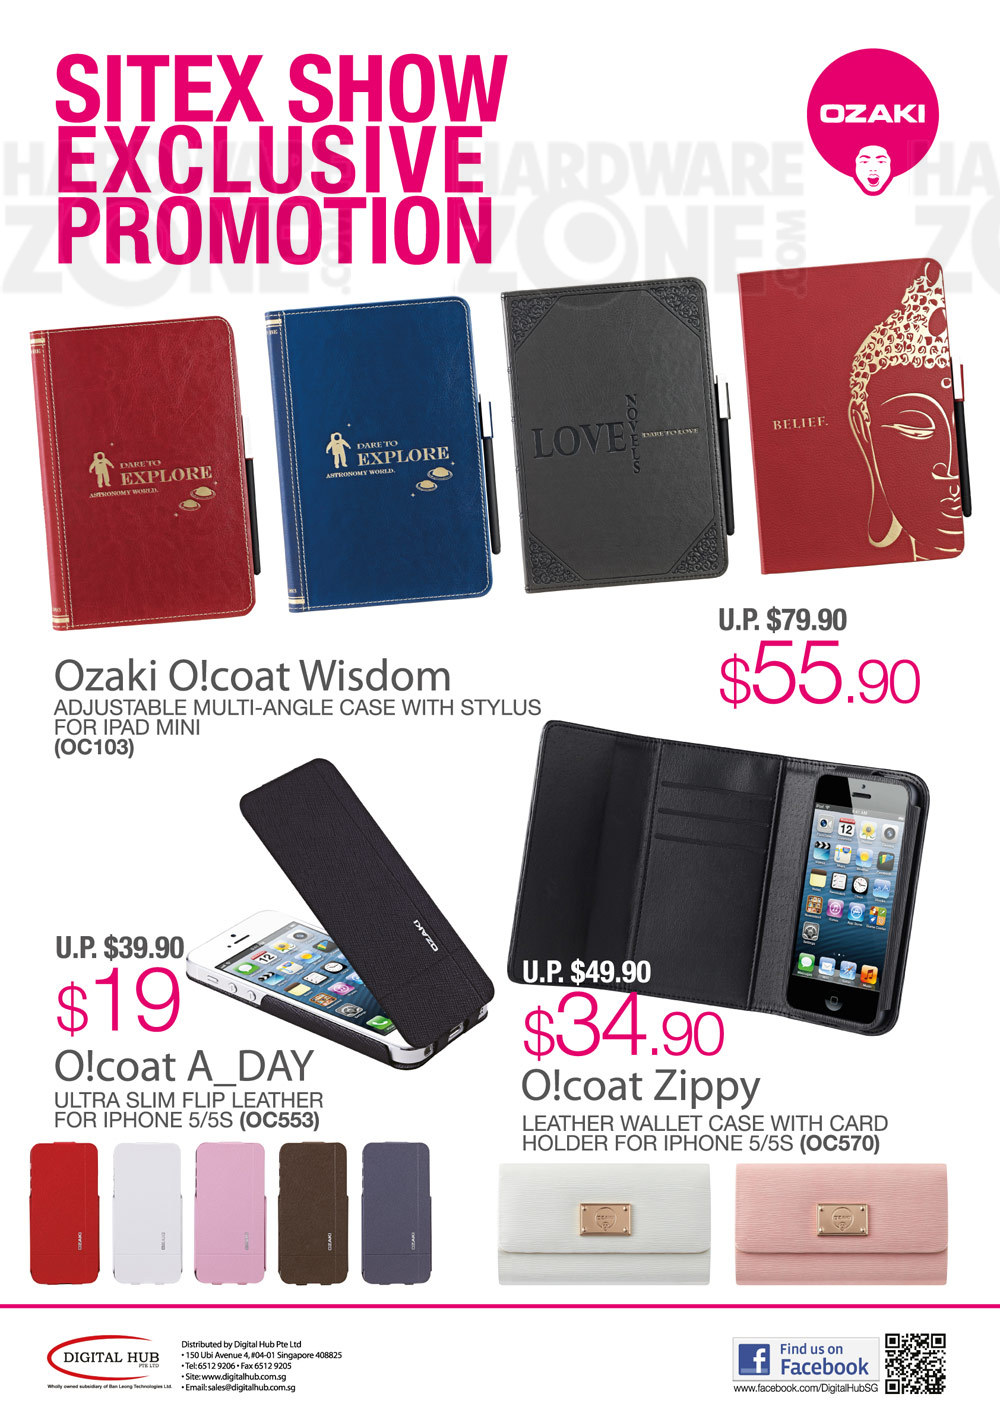 Ozaki mobile accessories